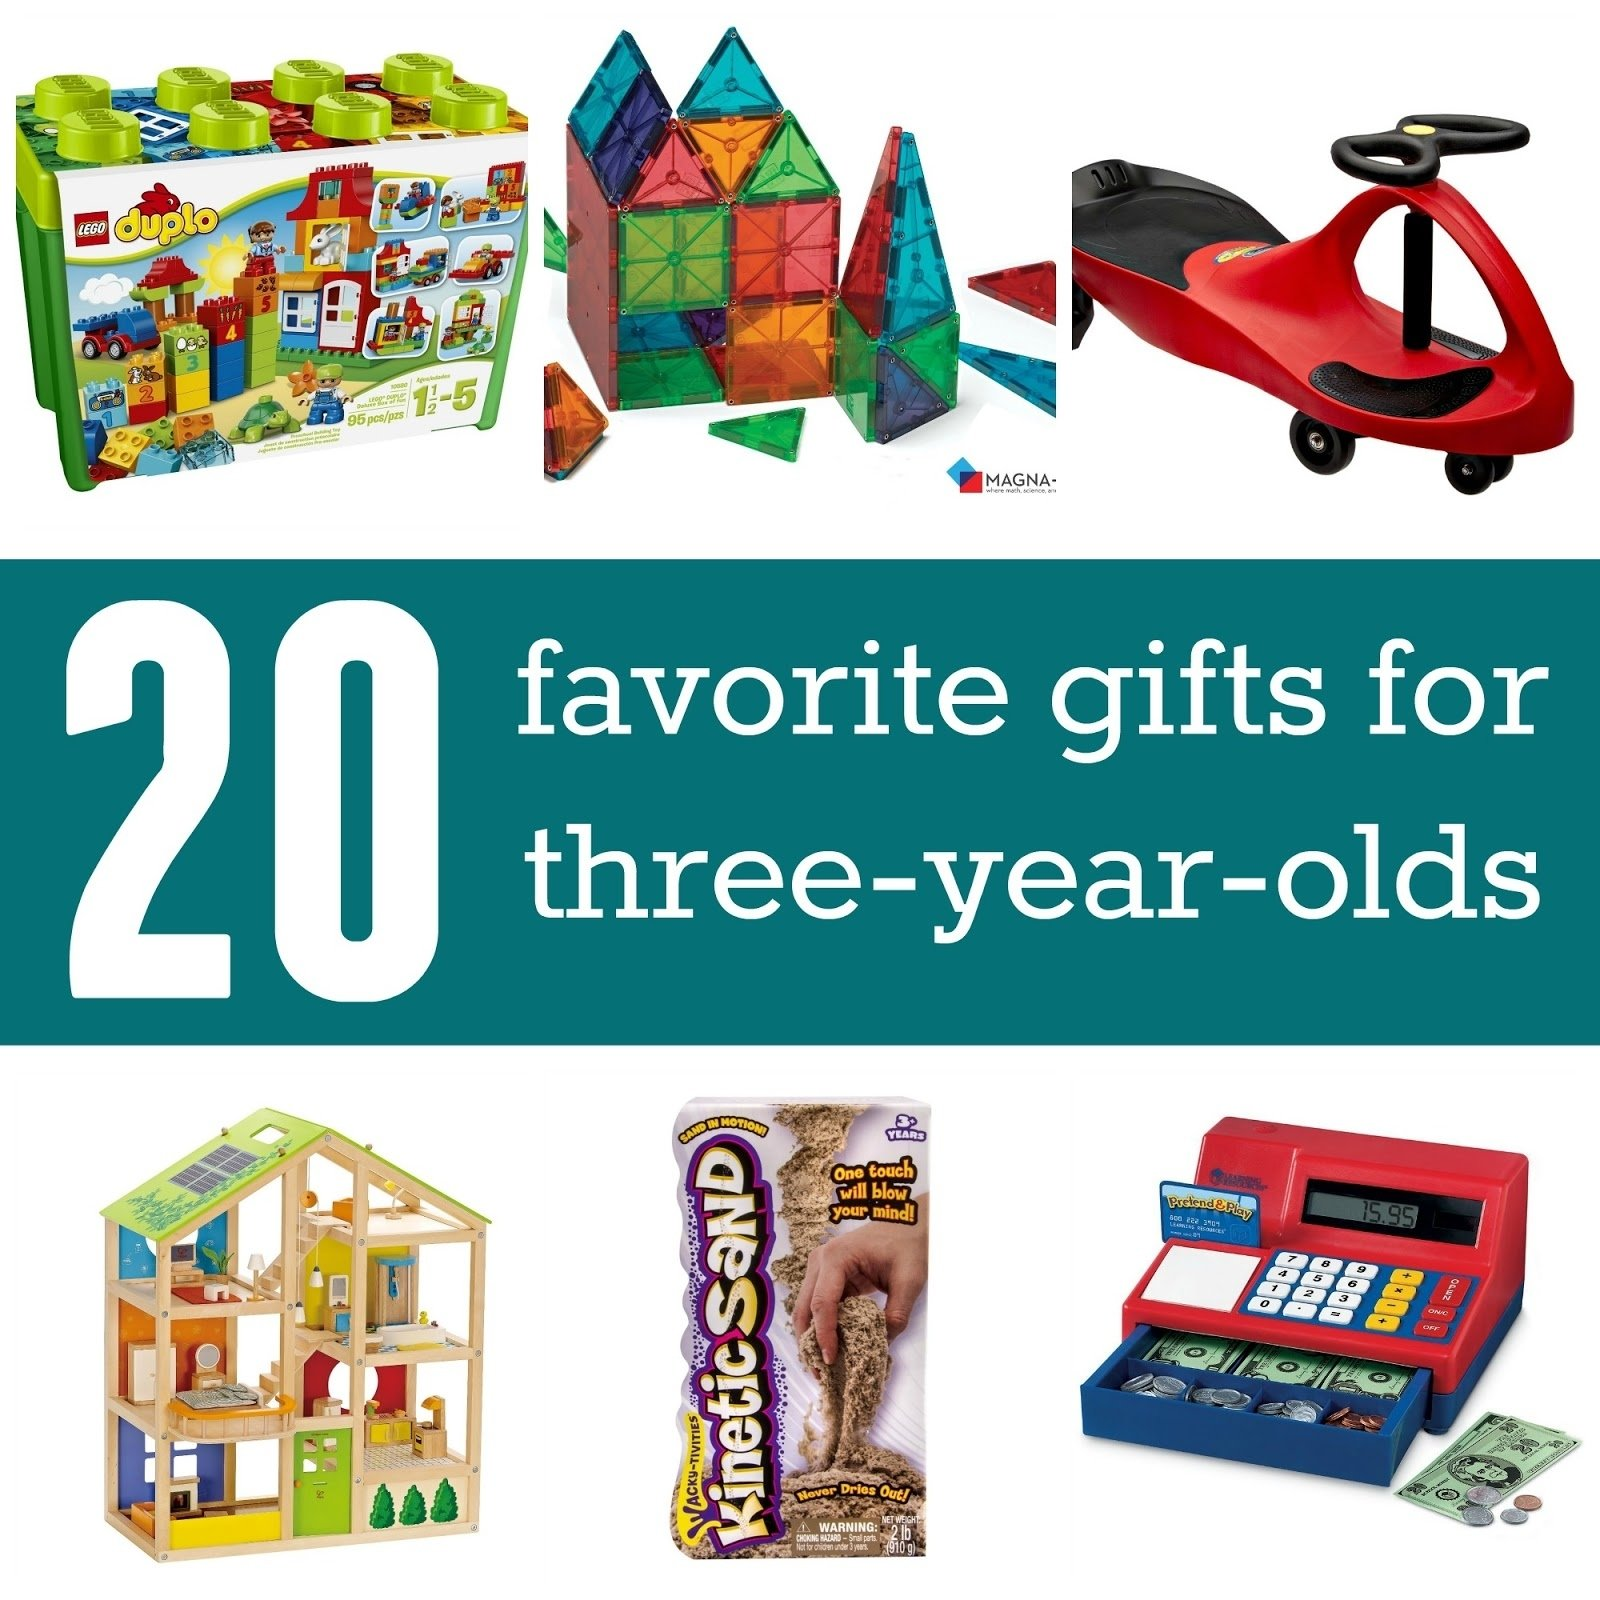 10 Wonderful Gift Ideas 3 Year Old toddler approved favorite gifts for 3 year olds 4 2020